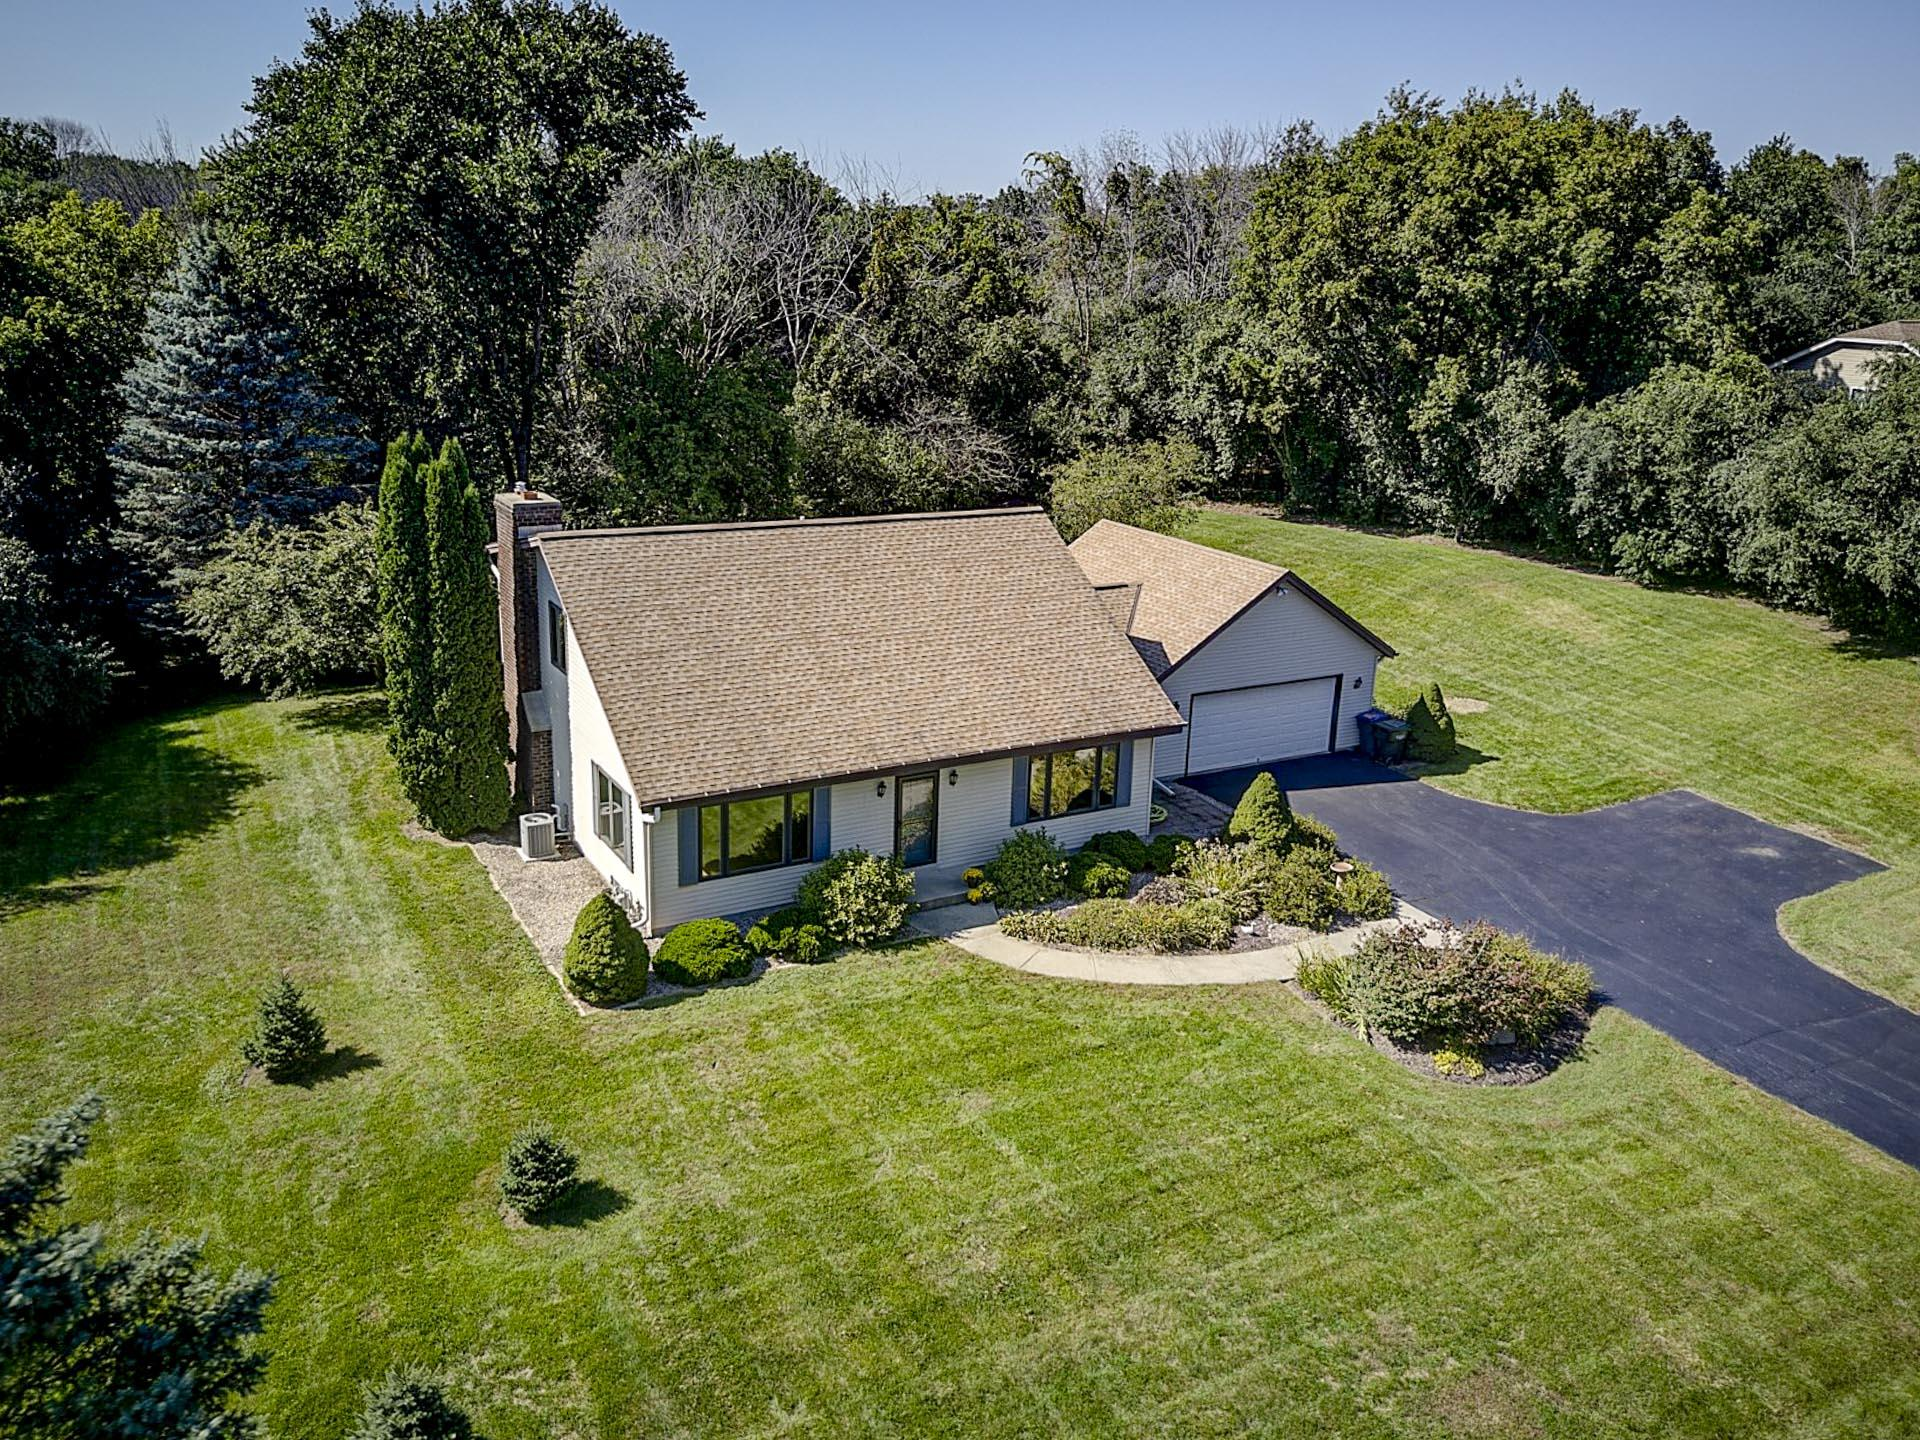 W275S4471 Green Country Rd, Waukesha, Wisconsin 53189, 3 Bedrooms Bedrooms, 8 Rooms Rooms,2 BathroomsBathrooms,Single-Family,For Sale,Green Country Rd,1606142